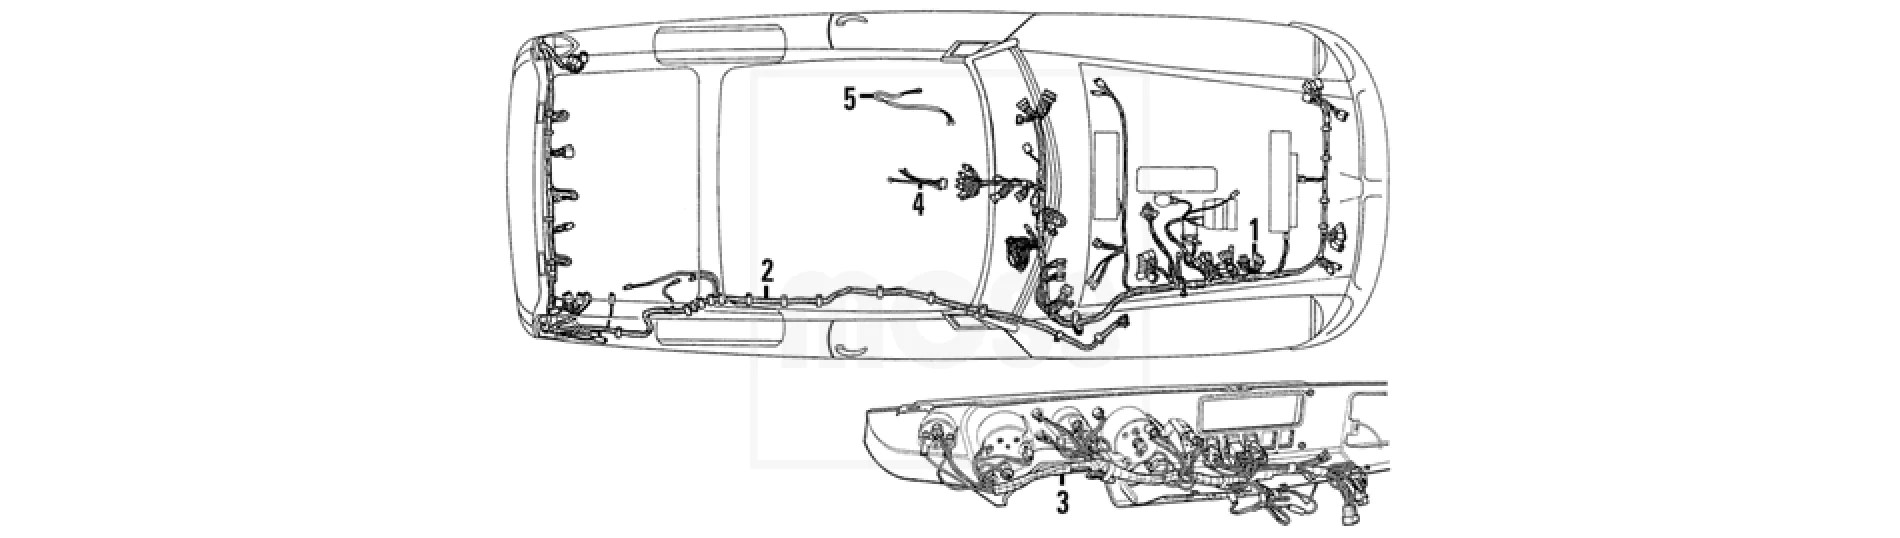 small resolution of 1977 mgb wiring harnes diagram